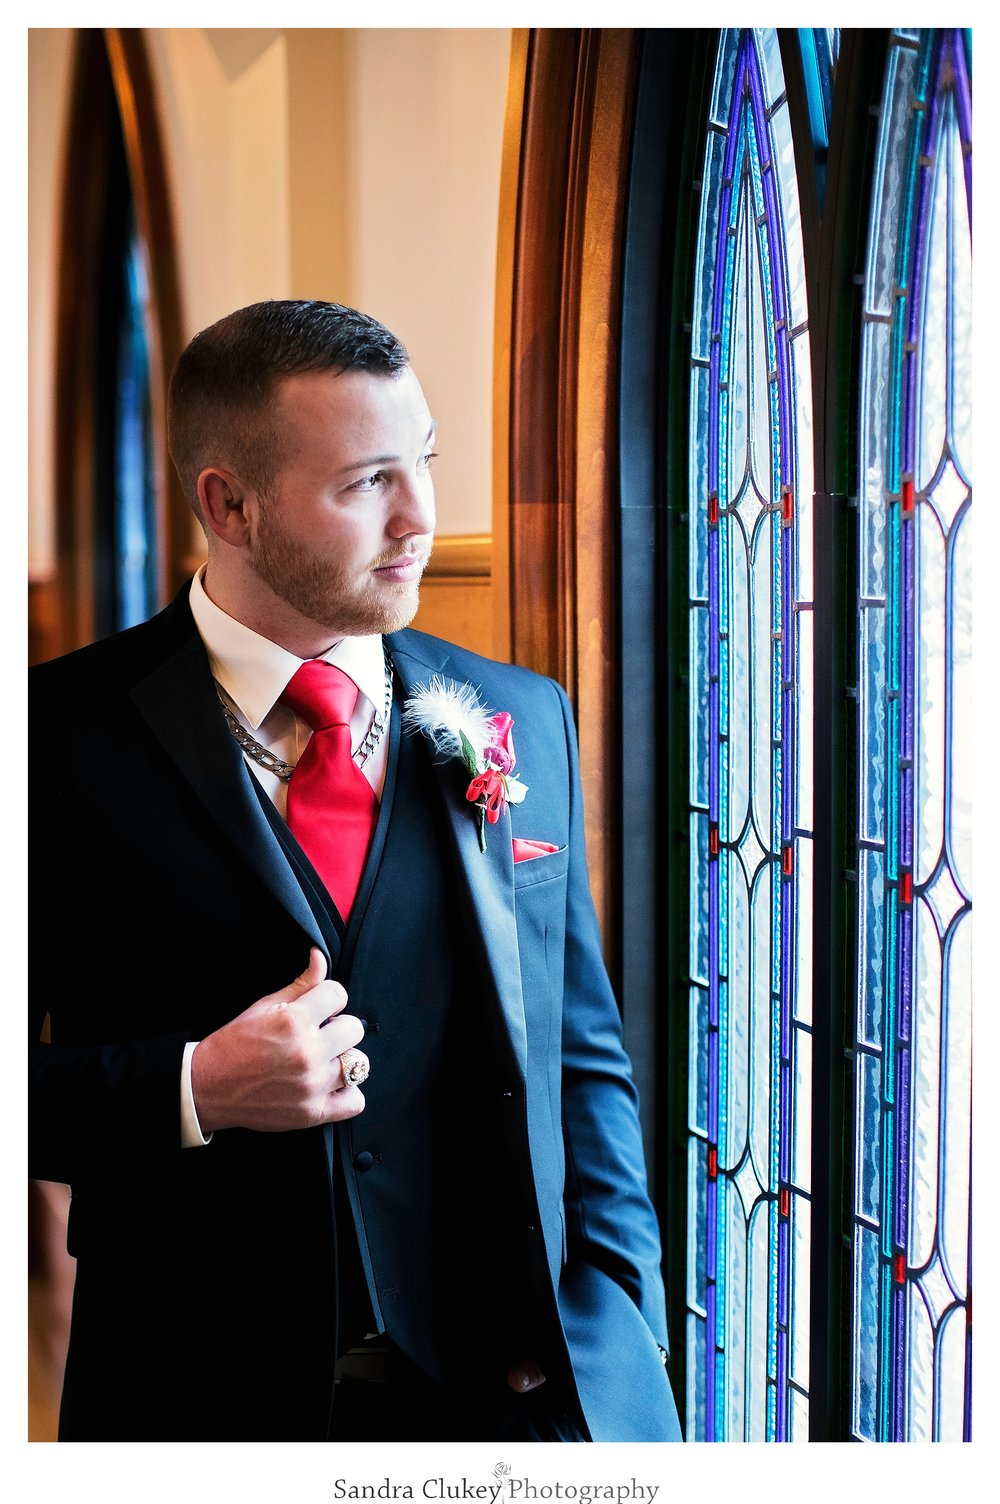 Groom at Lee University Chapel's stained glass window's